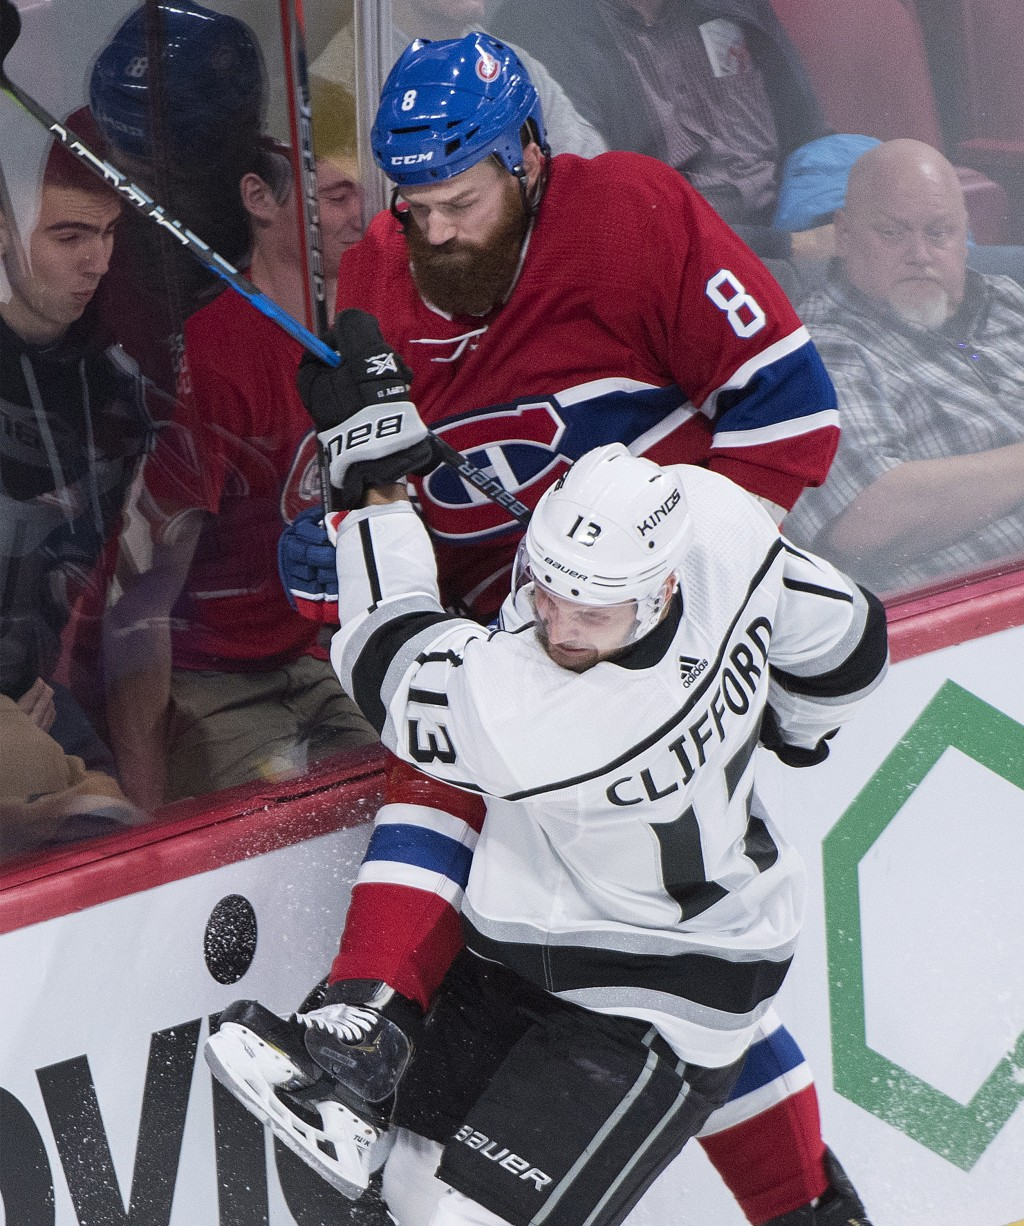 Los Angeles Kings' Kyle Clifford (13) checks Montreal Canadiens' Jordie Benn into the glass during the second period of an NHL hockey game Thursday, O